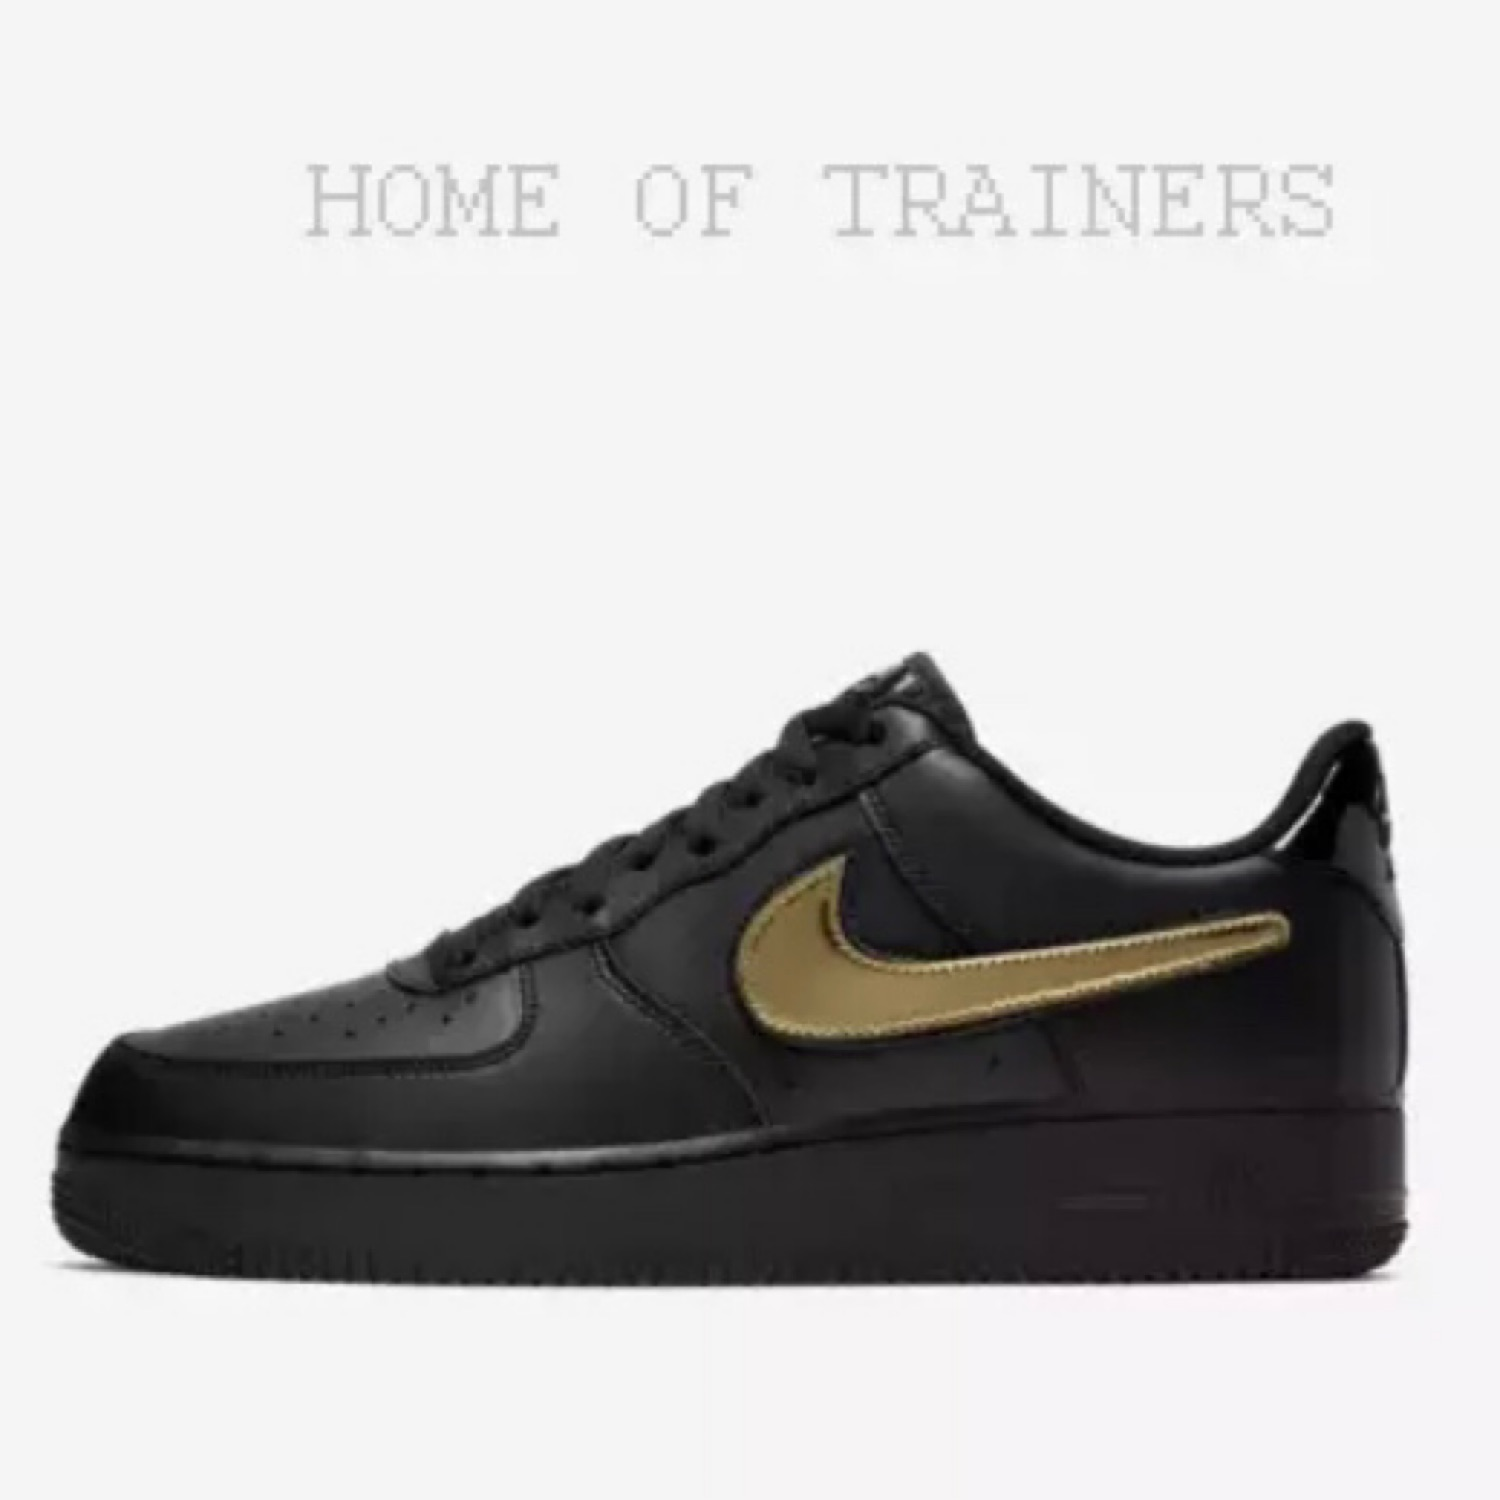 2air force 1 swoosh